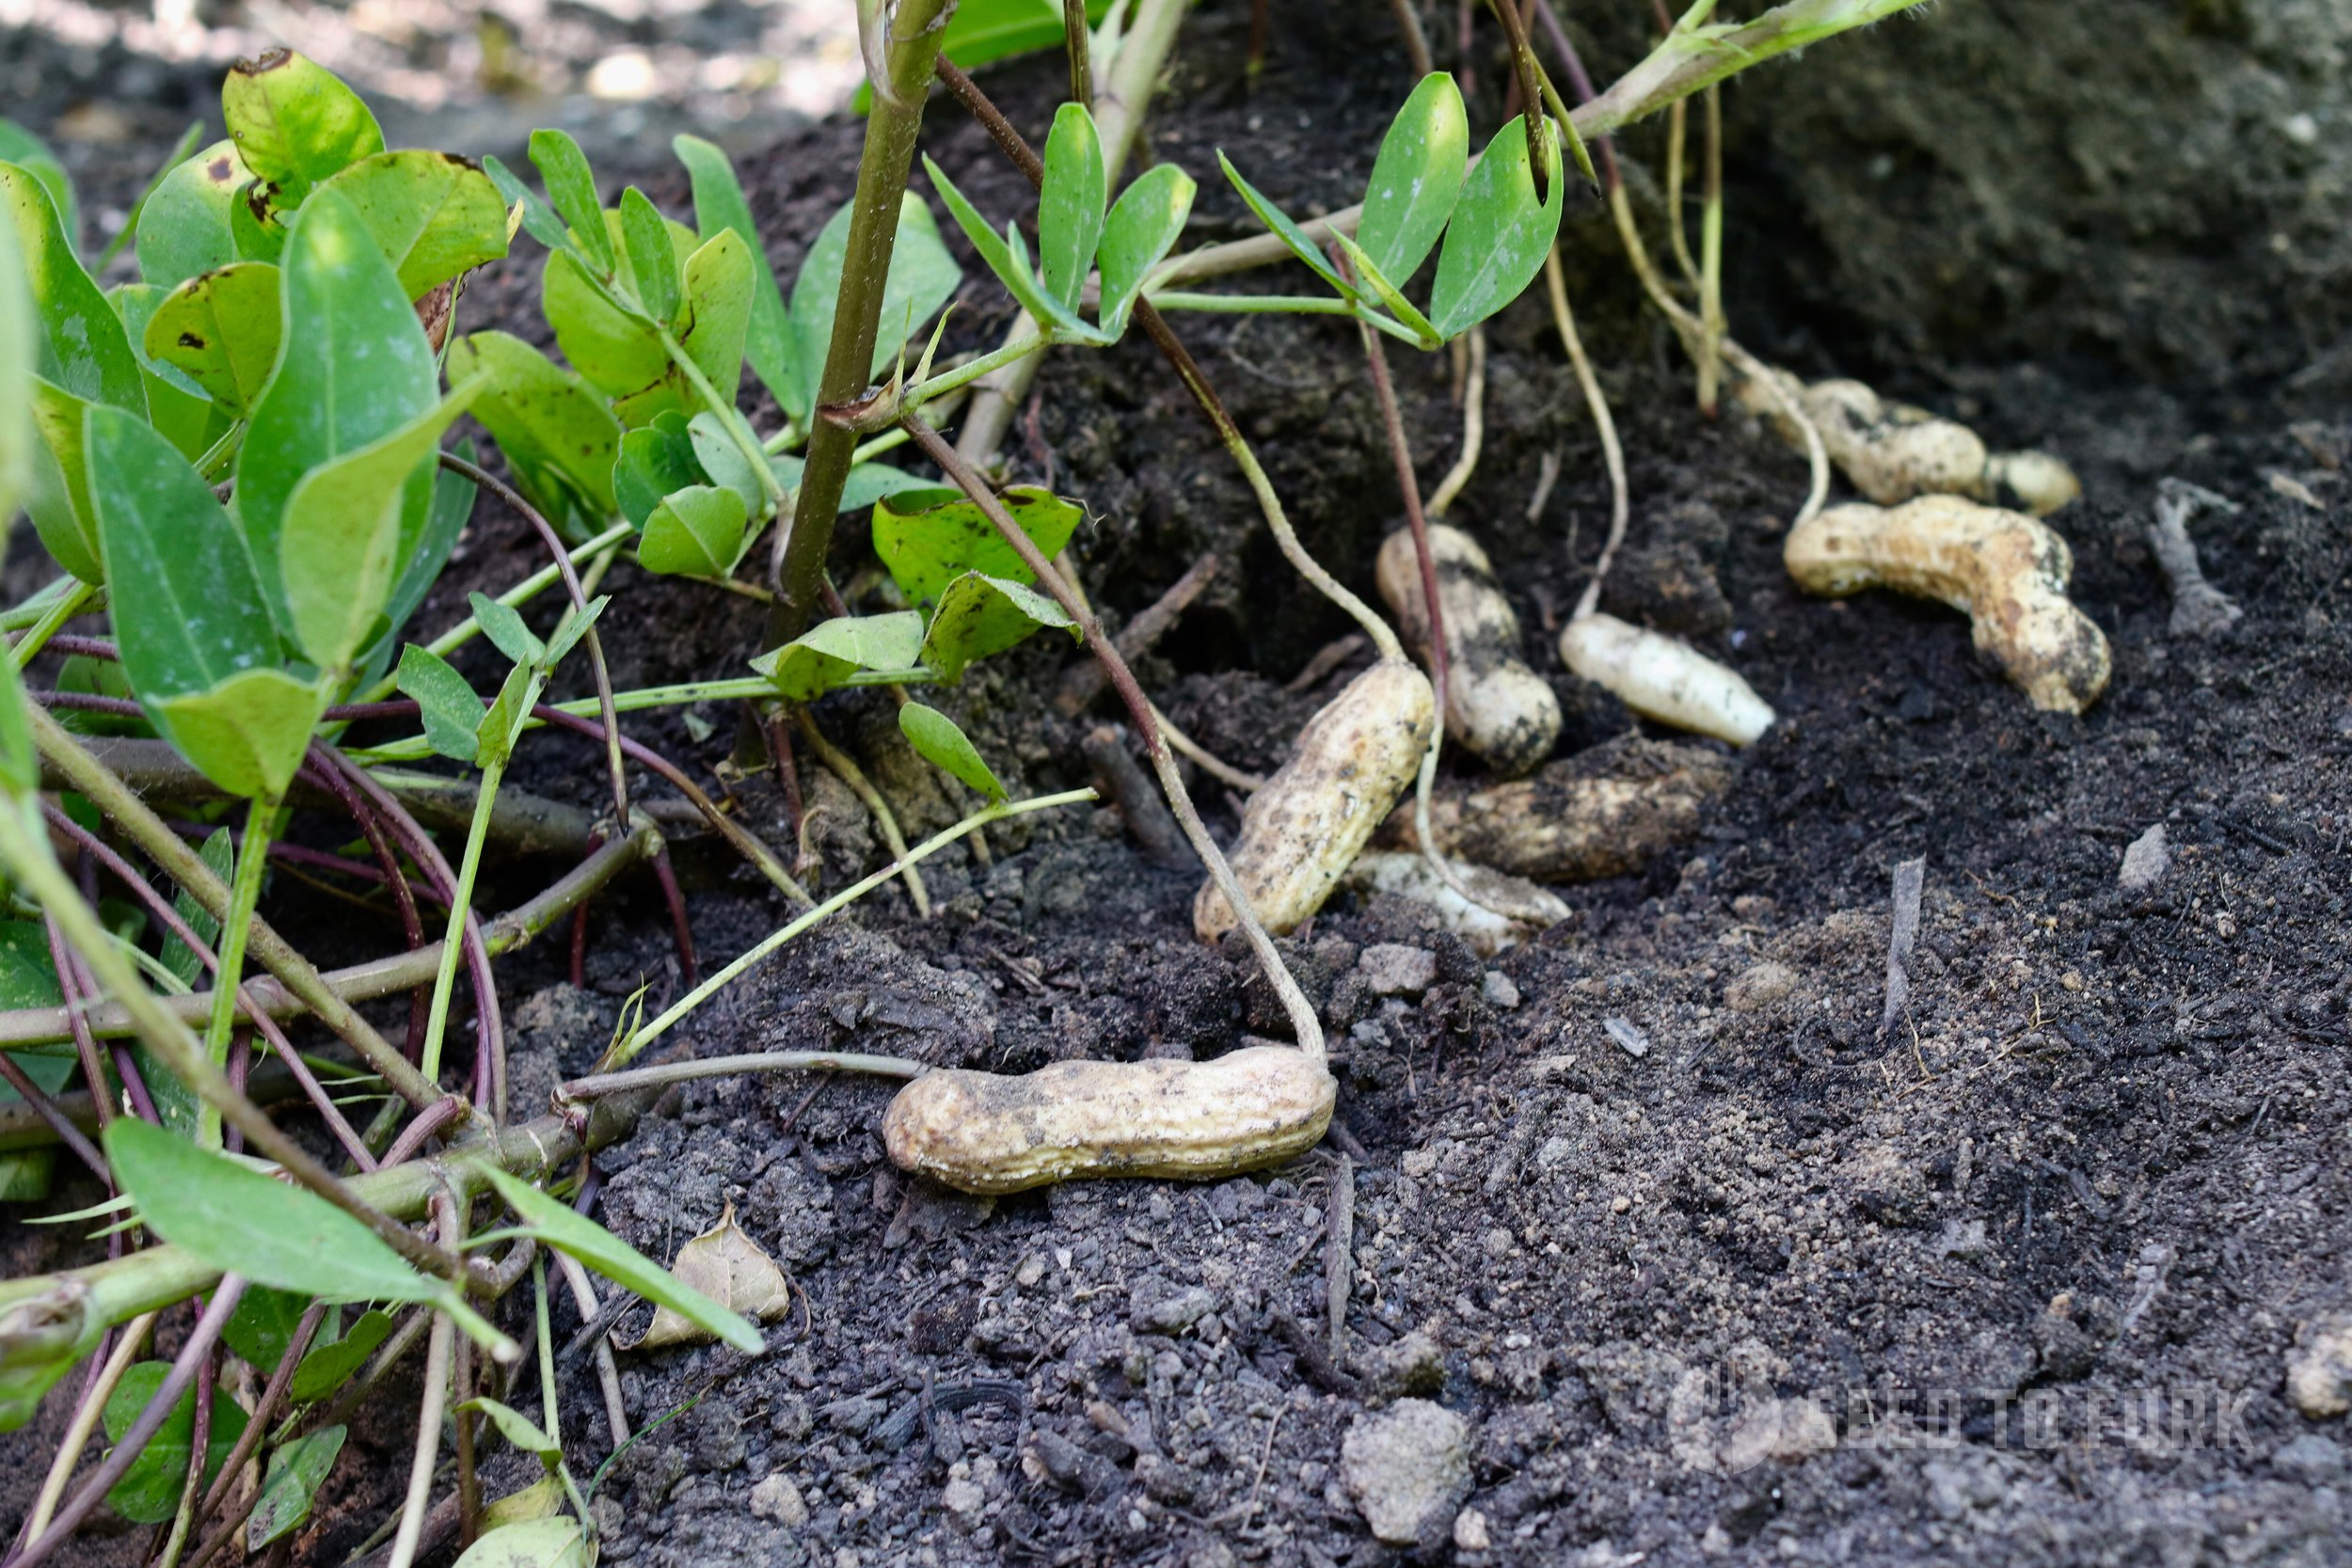 A fun activity is to gently remove some of the light soil that you mounded up around your peanuts earlier in summer to check on the swelling nuts themselves. Here you can really appreciate where peanuts come from!